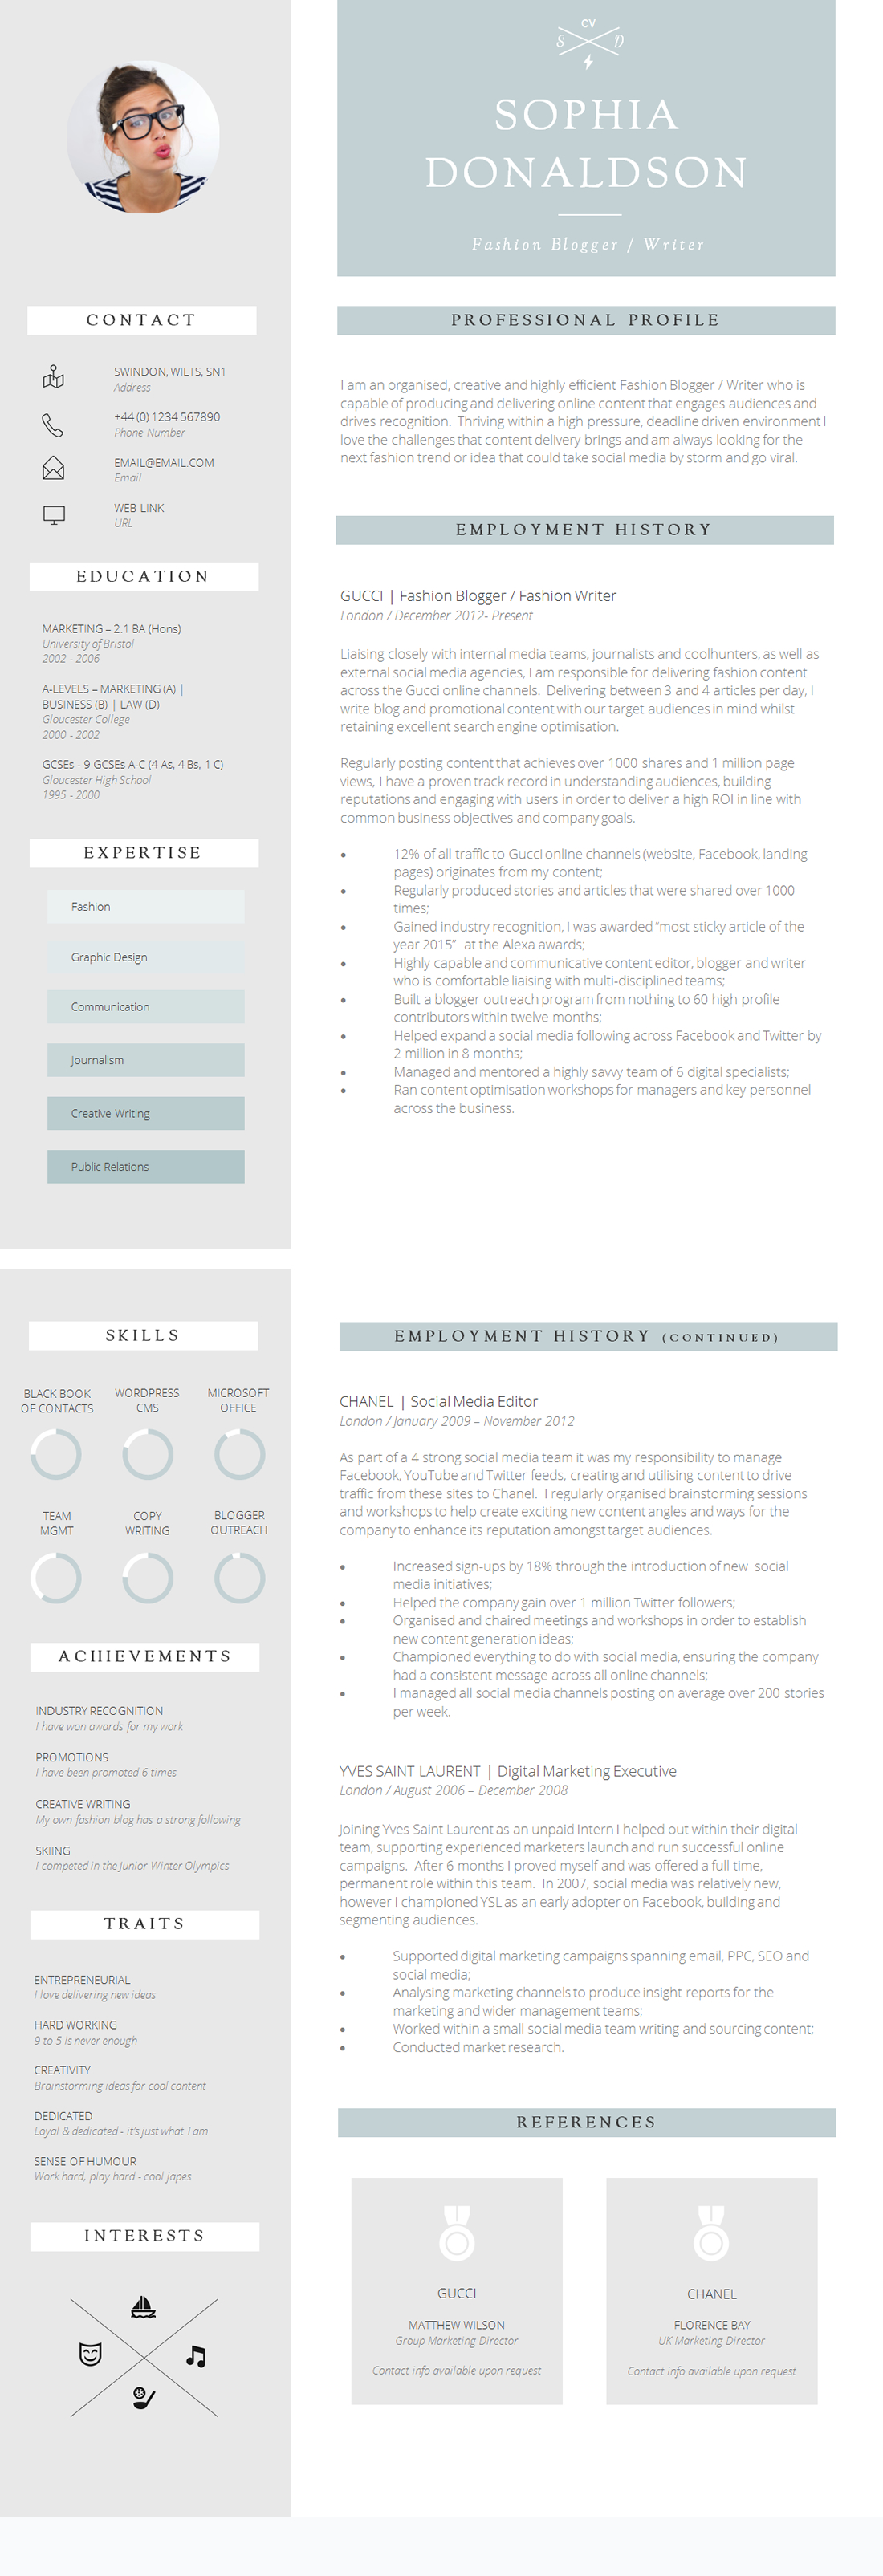 12 brilliant resume templates that youll want to steal guru jobs 12 brilliant resume templates that youll want to steal wajeb Choice Image